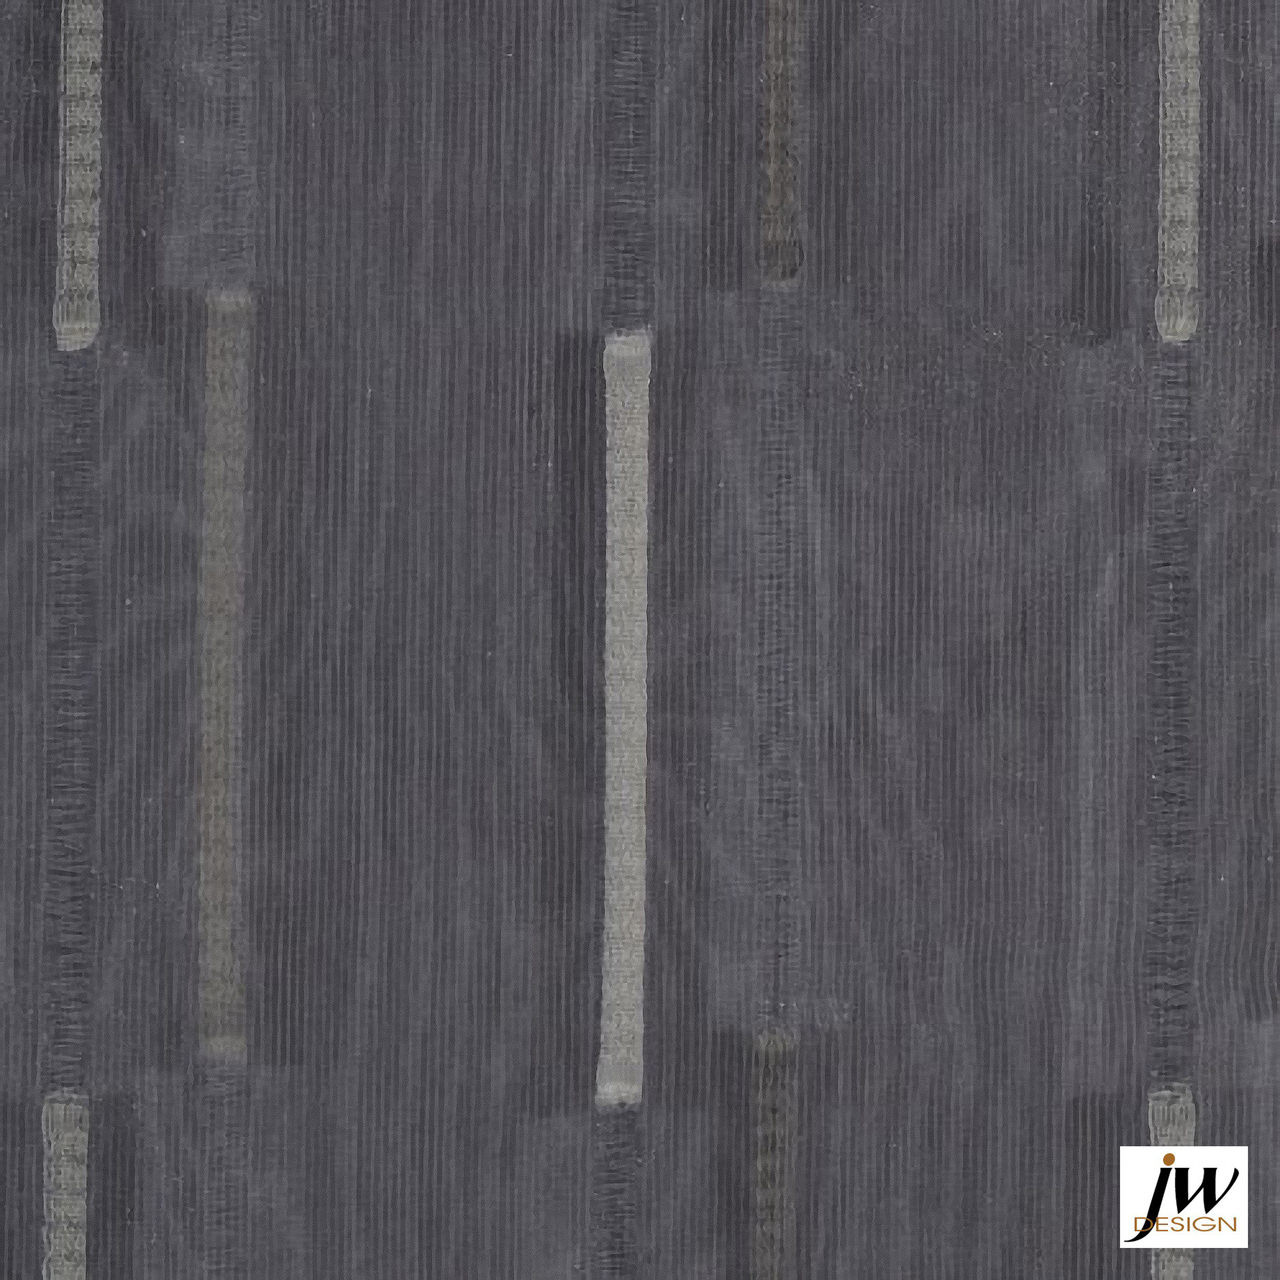 JW Design - Parade Natural Sheer 300cm  | Curtain Sheer Fabric - Silver, Black - Charcoal, Contemporary, Modern, Pattern, Synthetic, Washable, Domestic Use, Weighted Hem